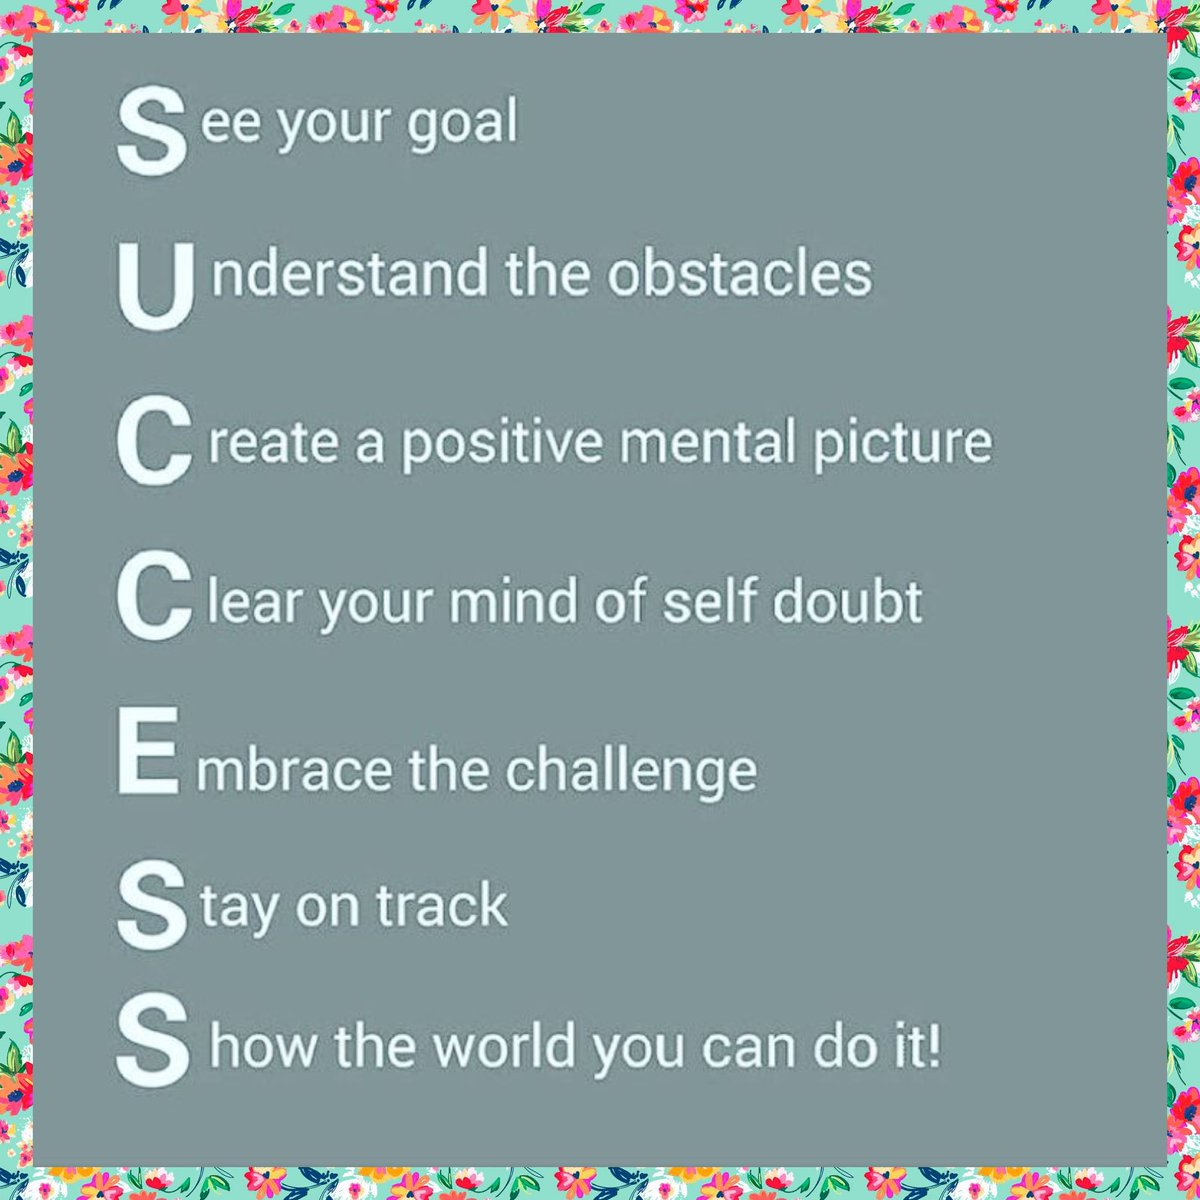 Visualize your #success #creativity #goals #confidence #ThinkBIGSundayWithMarsha  #Mindfulness #SuccessTRAIN you got this!!!!<br>http://pic.twitter.com/7BLcVF9qdF